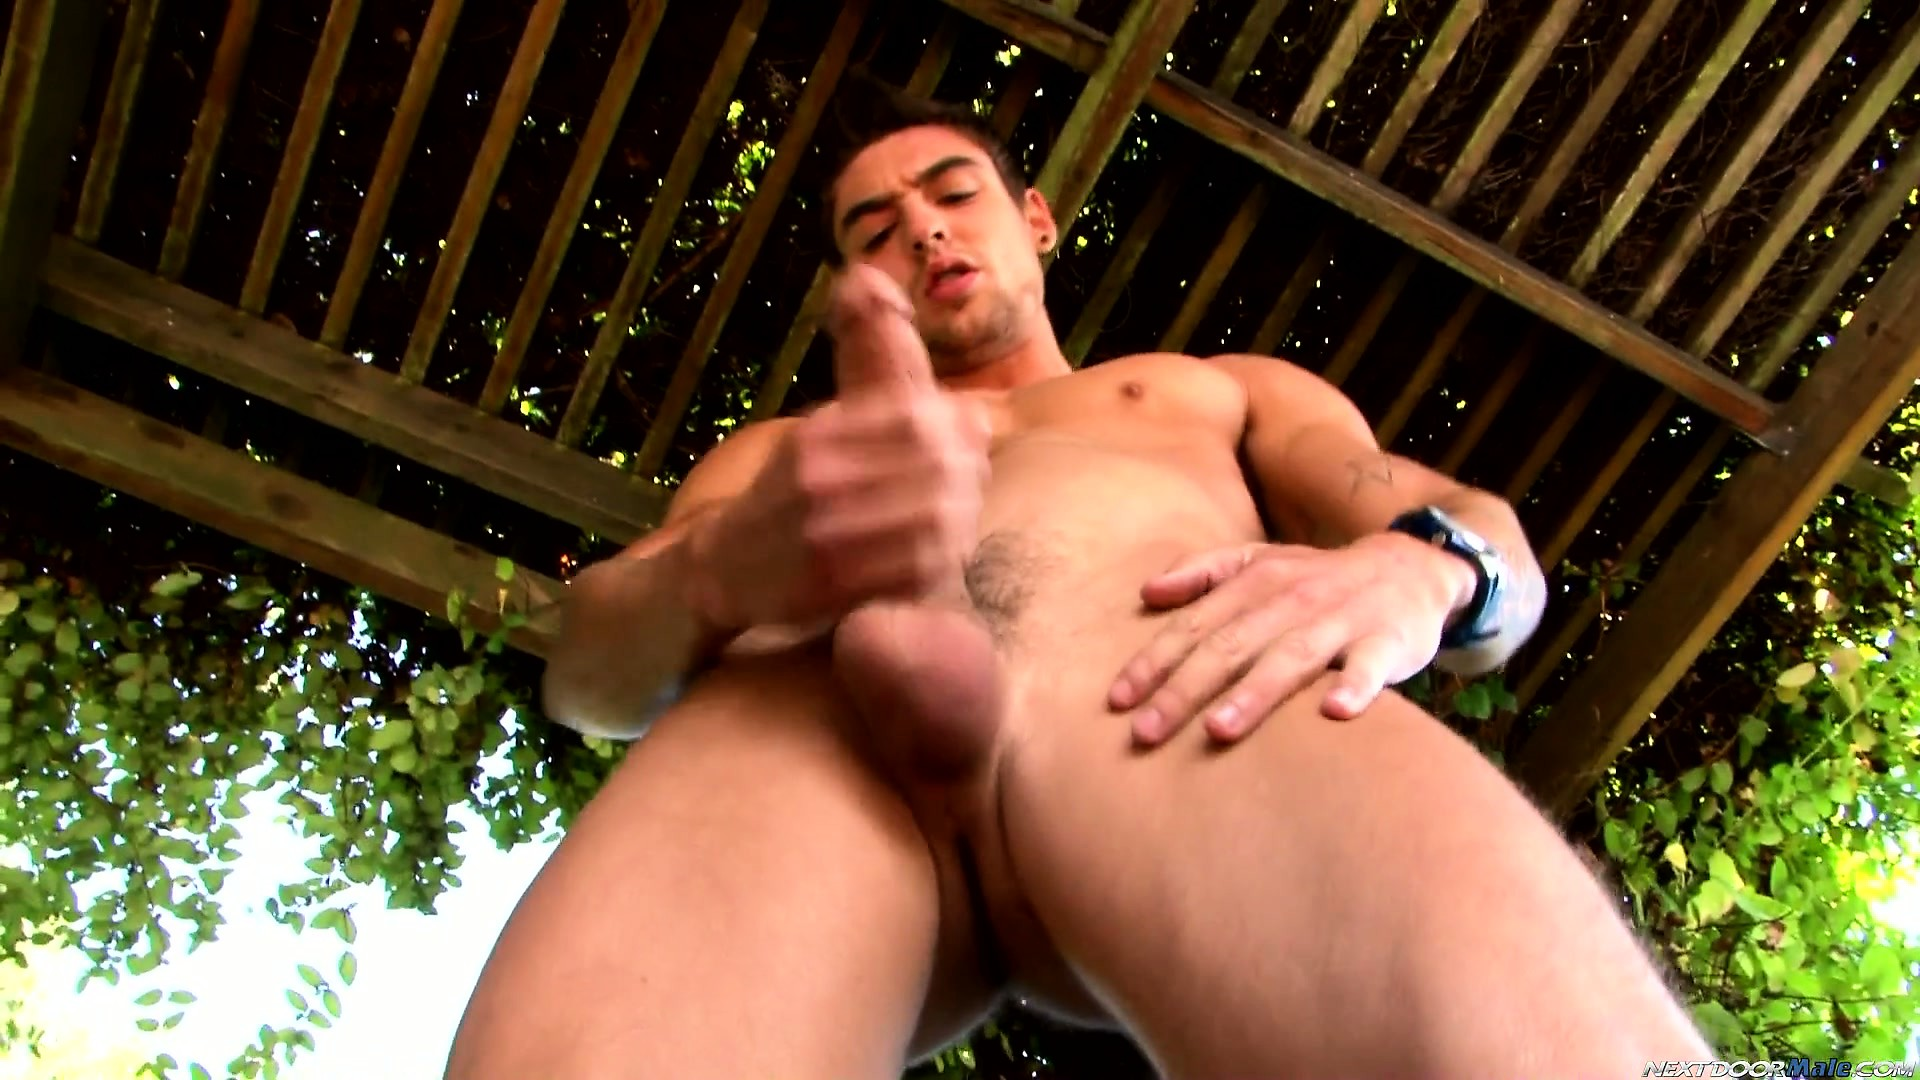 Porno Video of Johnny Torque Bends Over To Jerk Then Stands Up Straight To Pump It